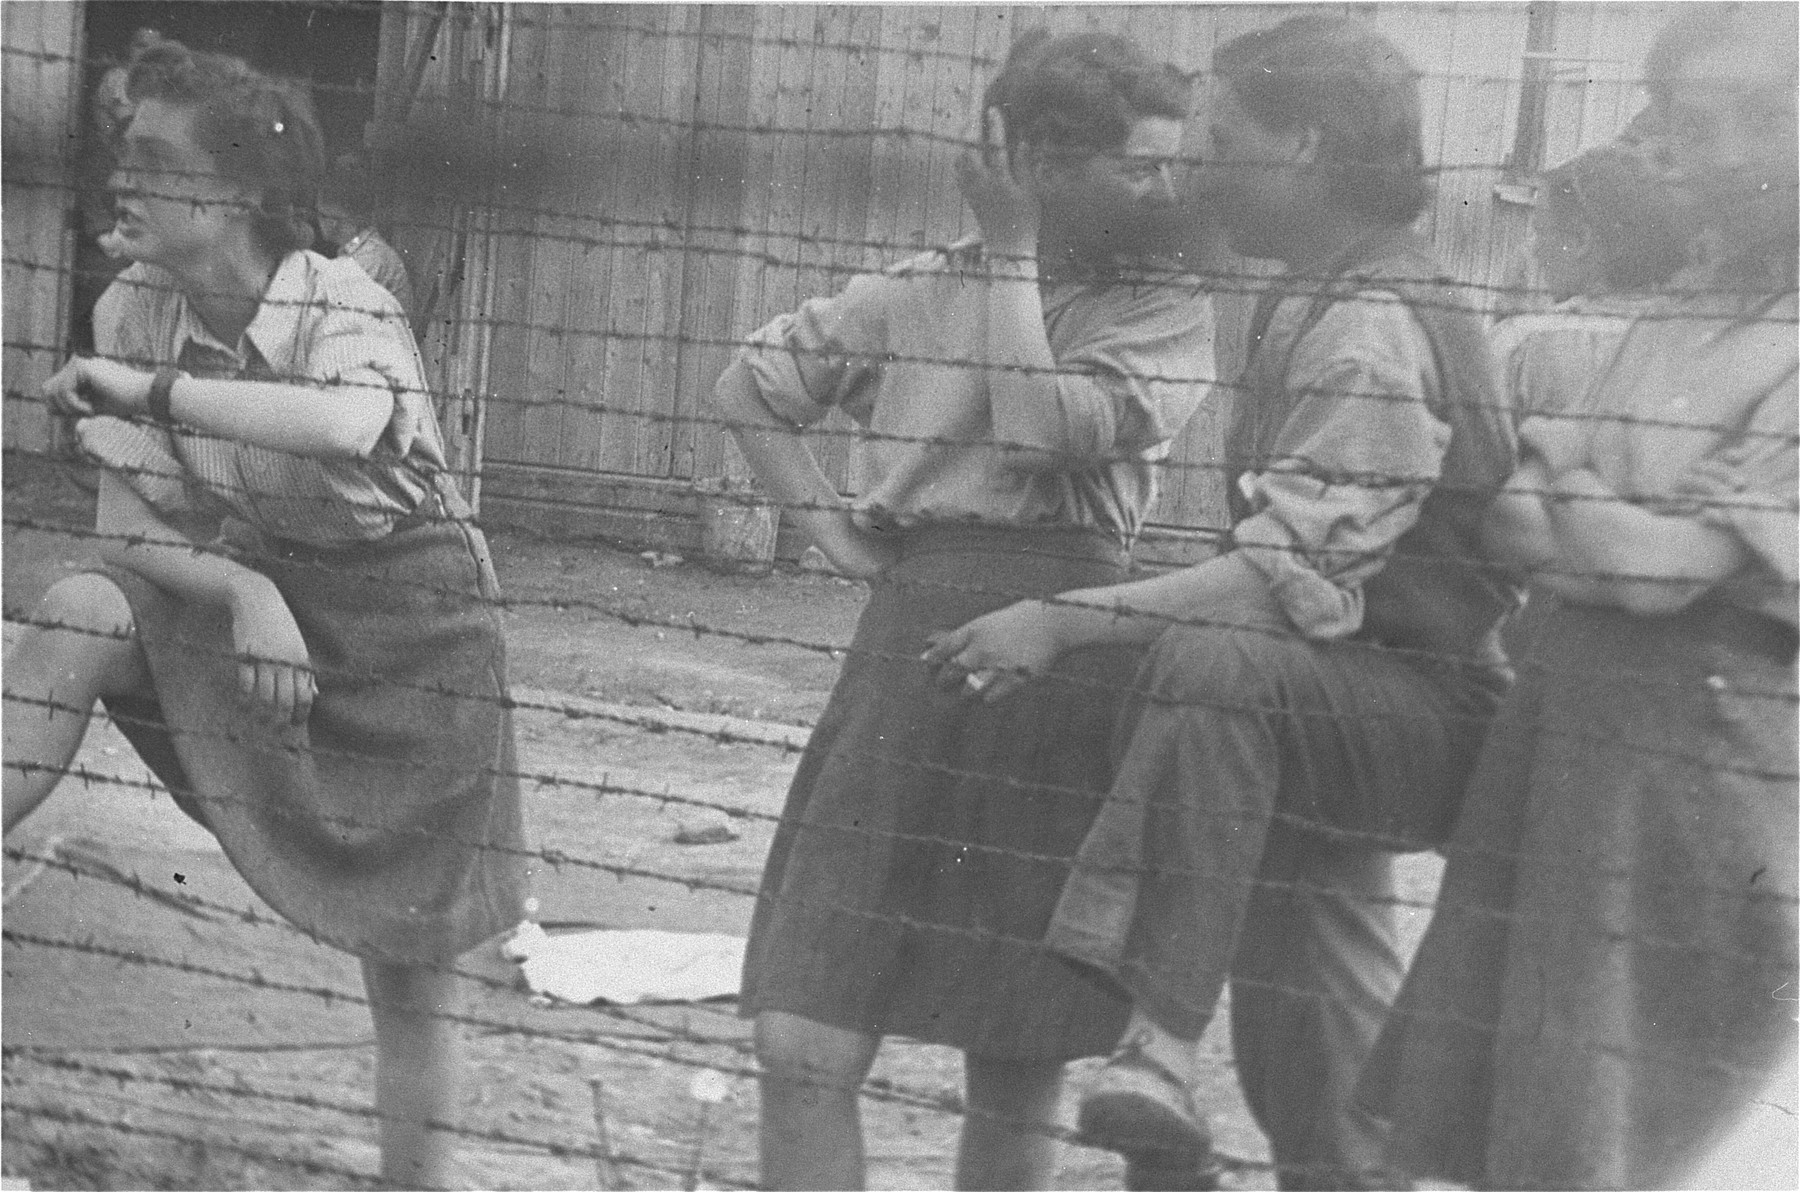 Survivors in the Mauthausen concentration camp.